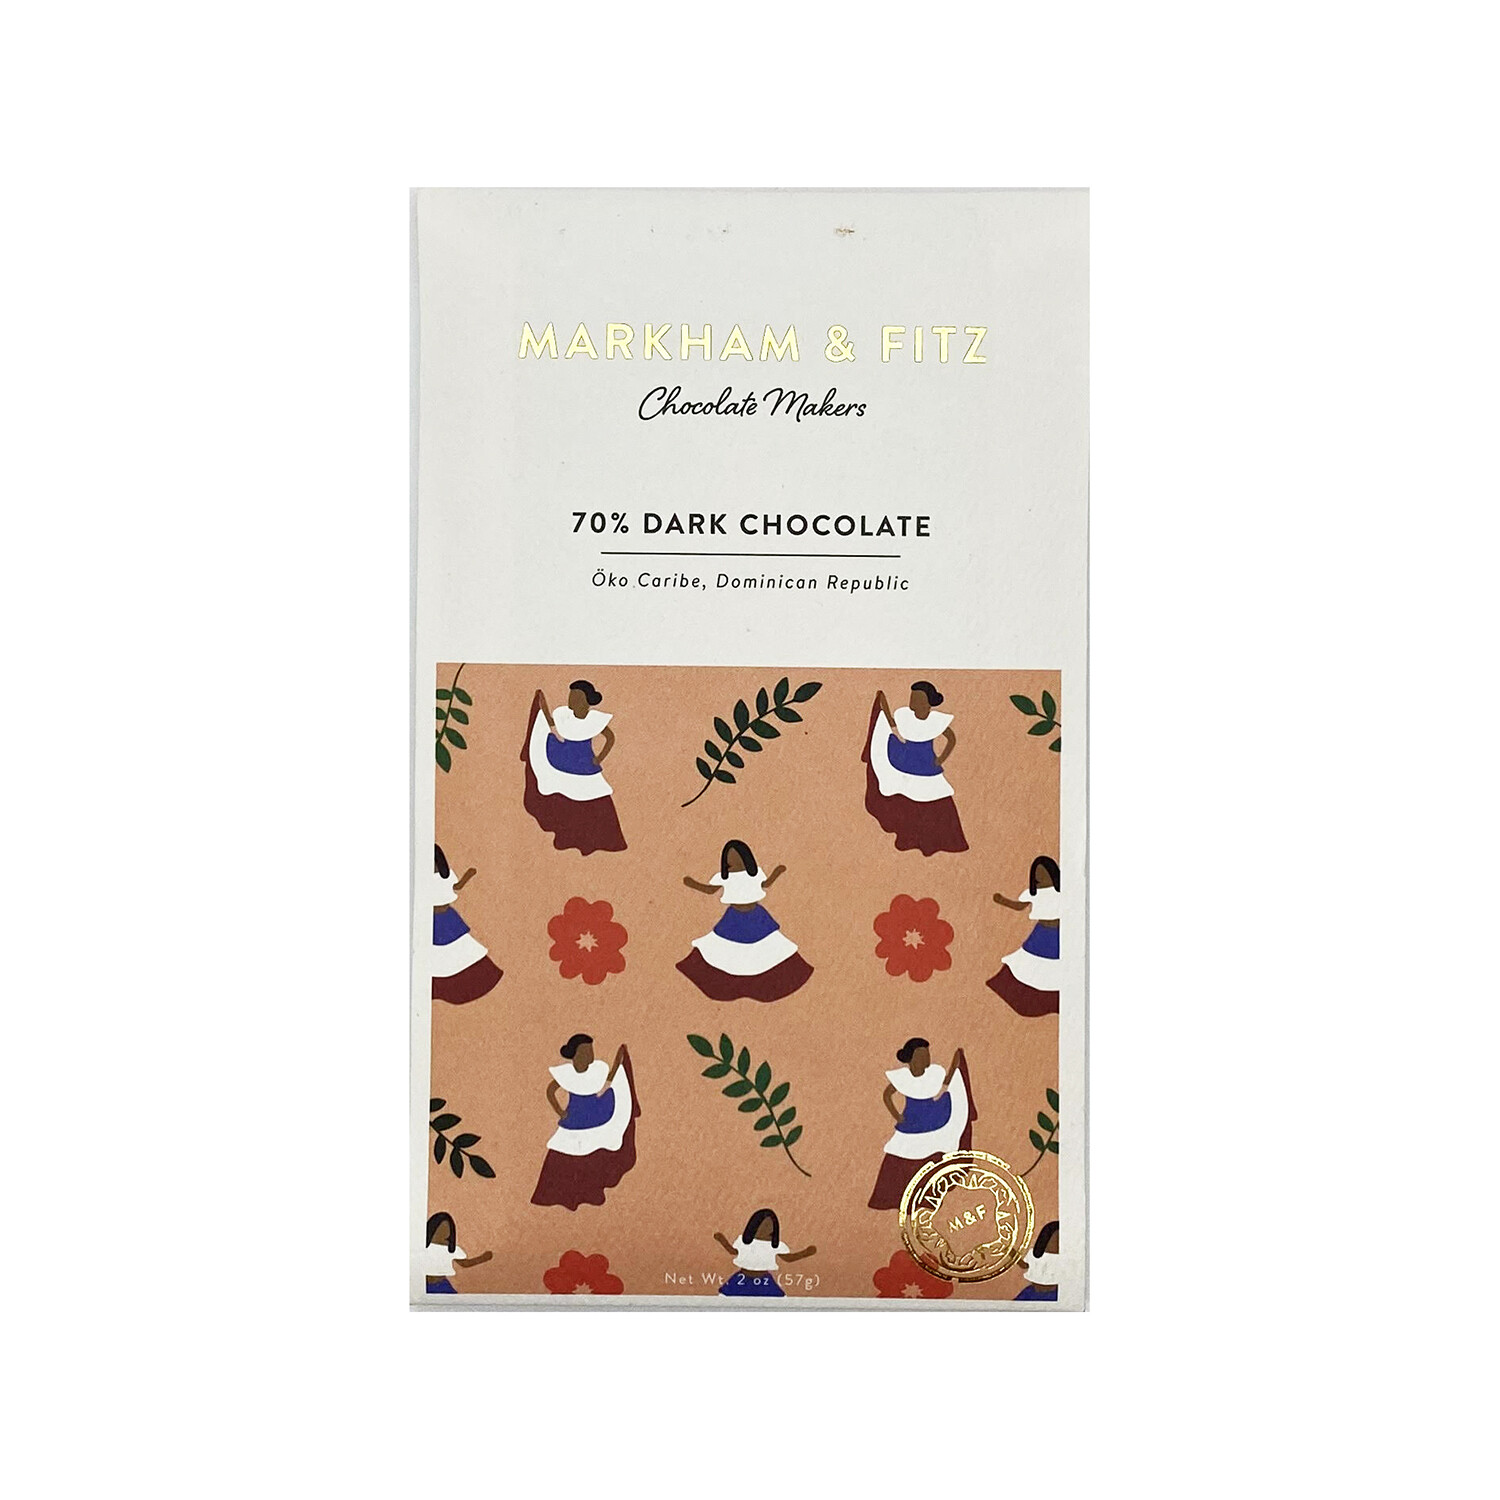 Markham & Fitz 70% Dark Chocolate Dominican Republic 2oz